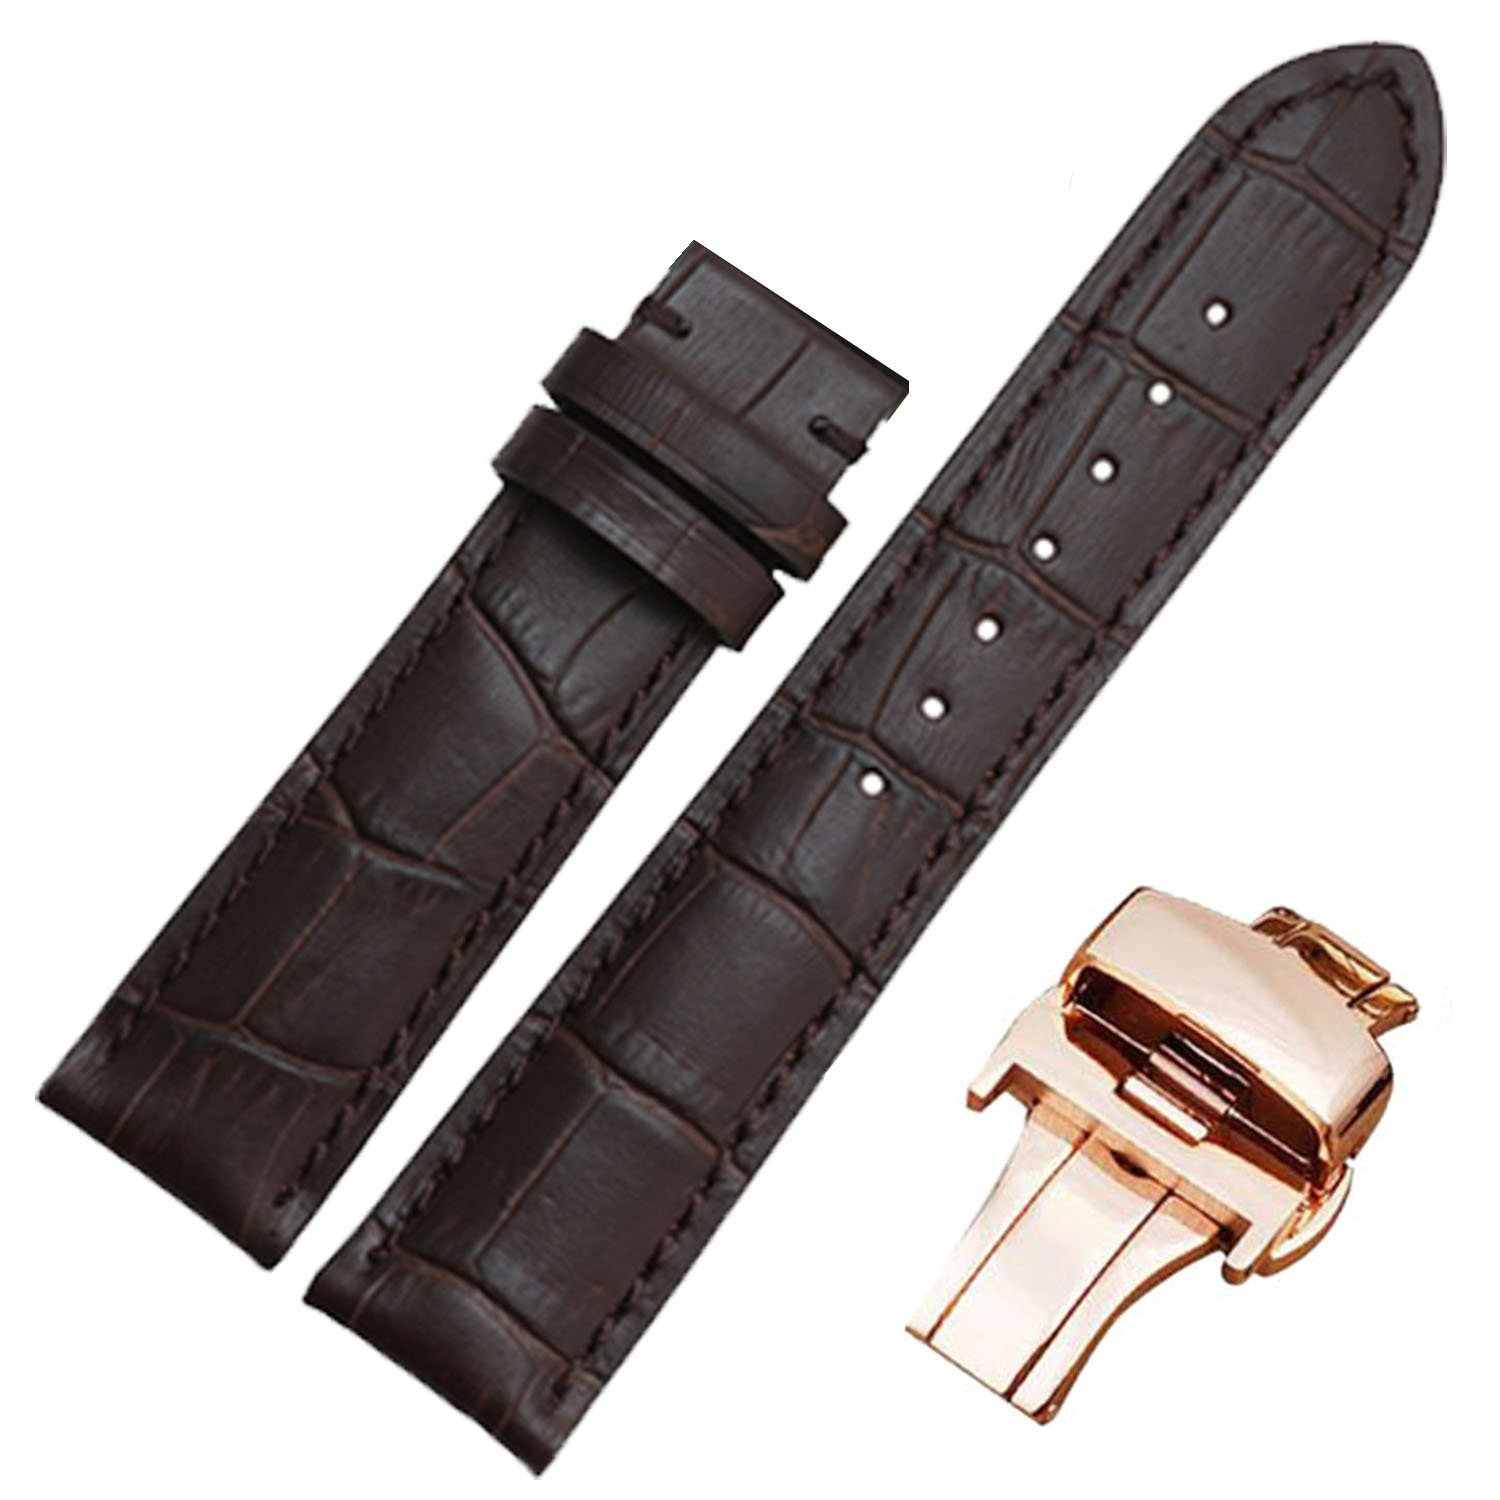 19mm 20mm Luxury Italian Brown Leather Watch Band Strap Deployment Clasp (19mm, Rose gold plate)